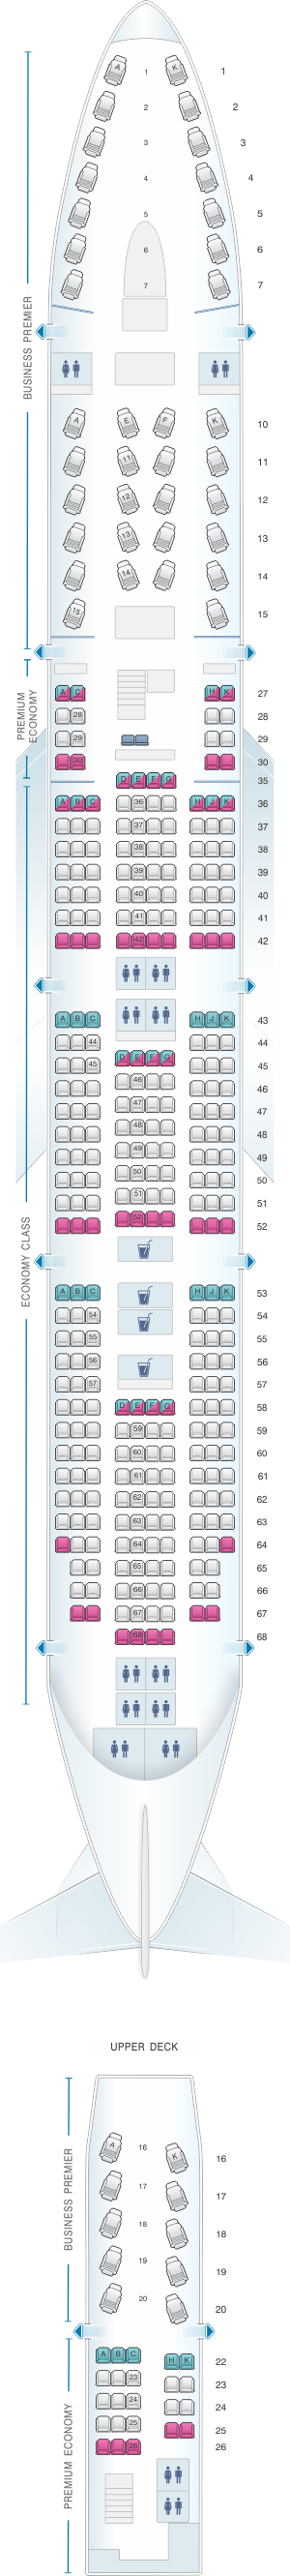 Seat map for Air New Zealand Boeing B747 400